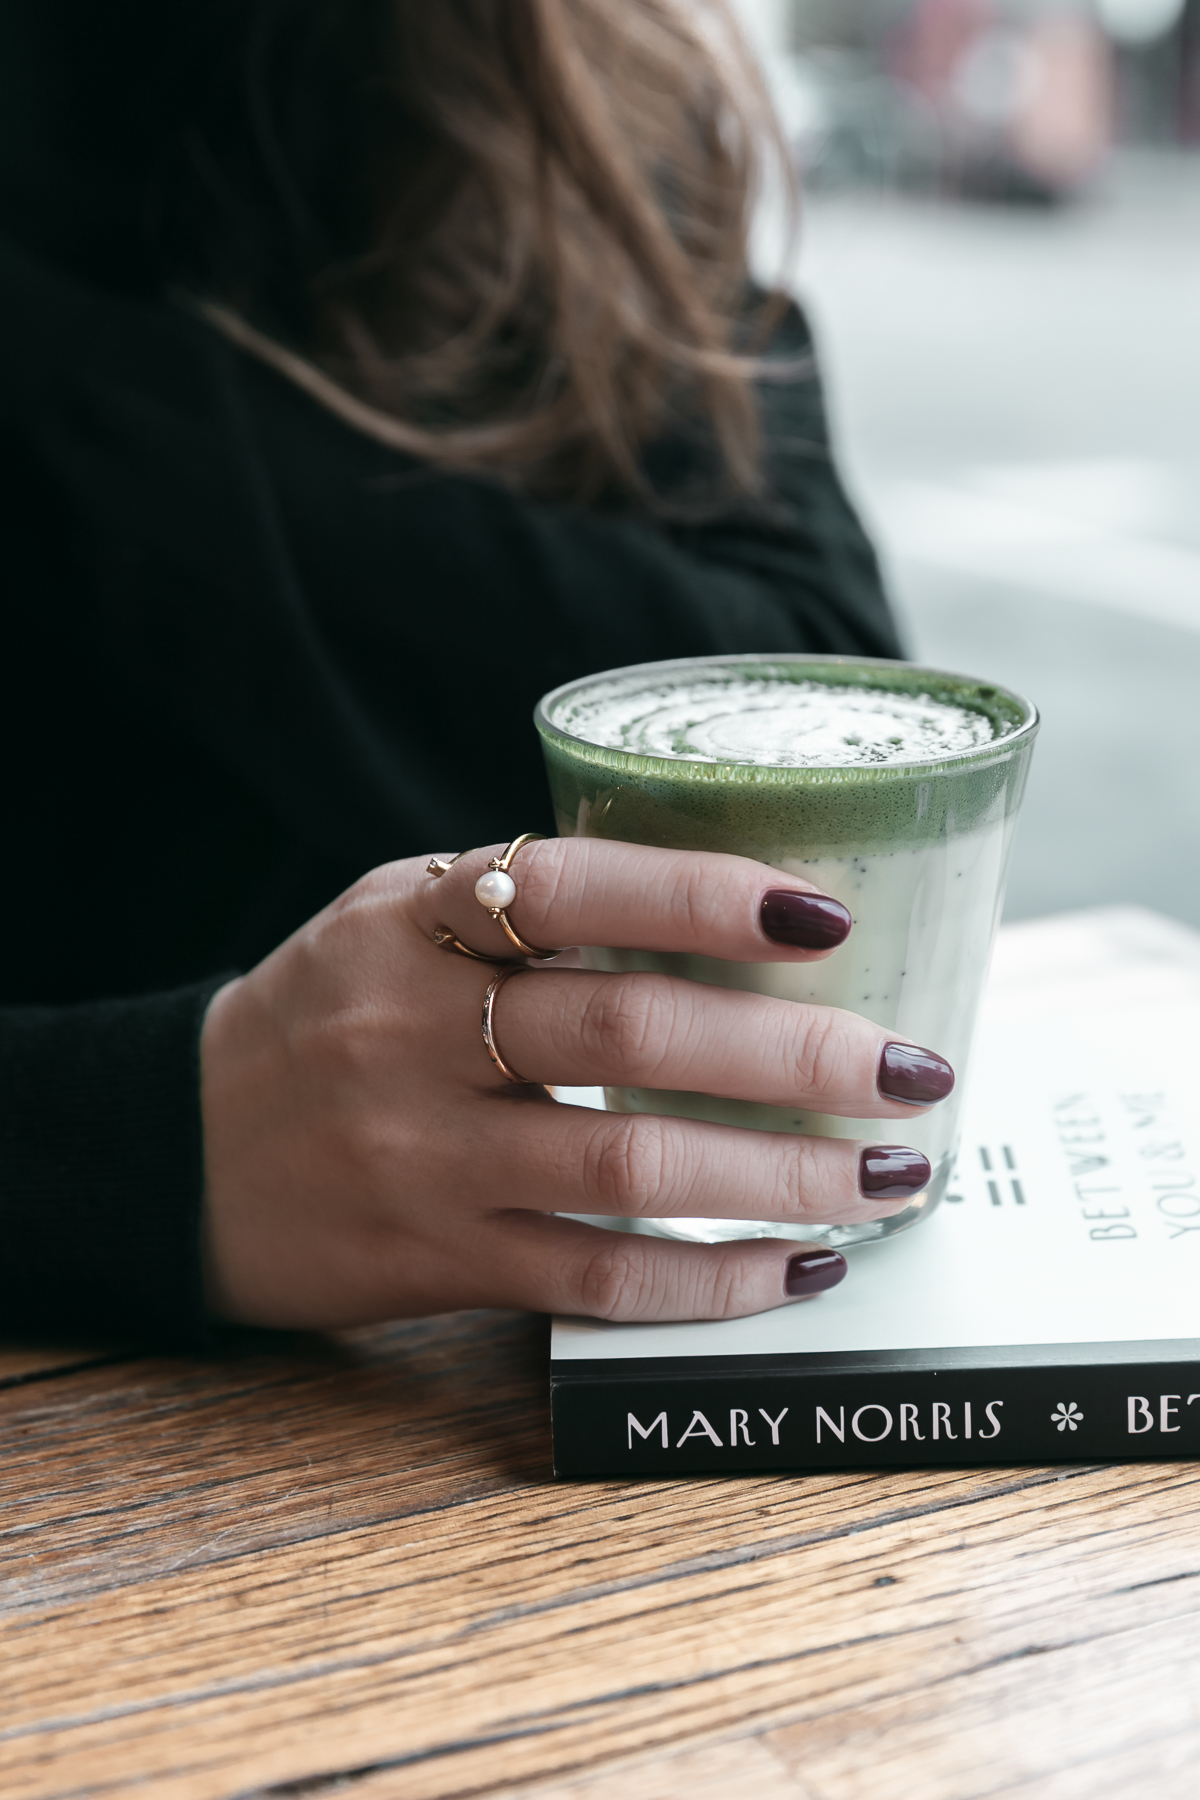 INDEX FINGER: OPEN PEARL INFINITY RING